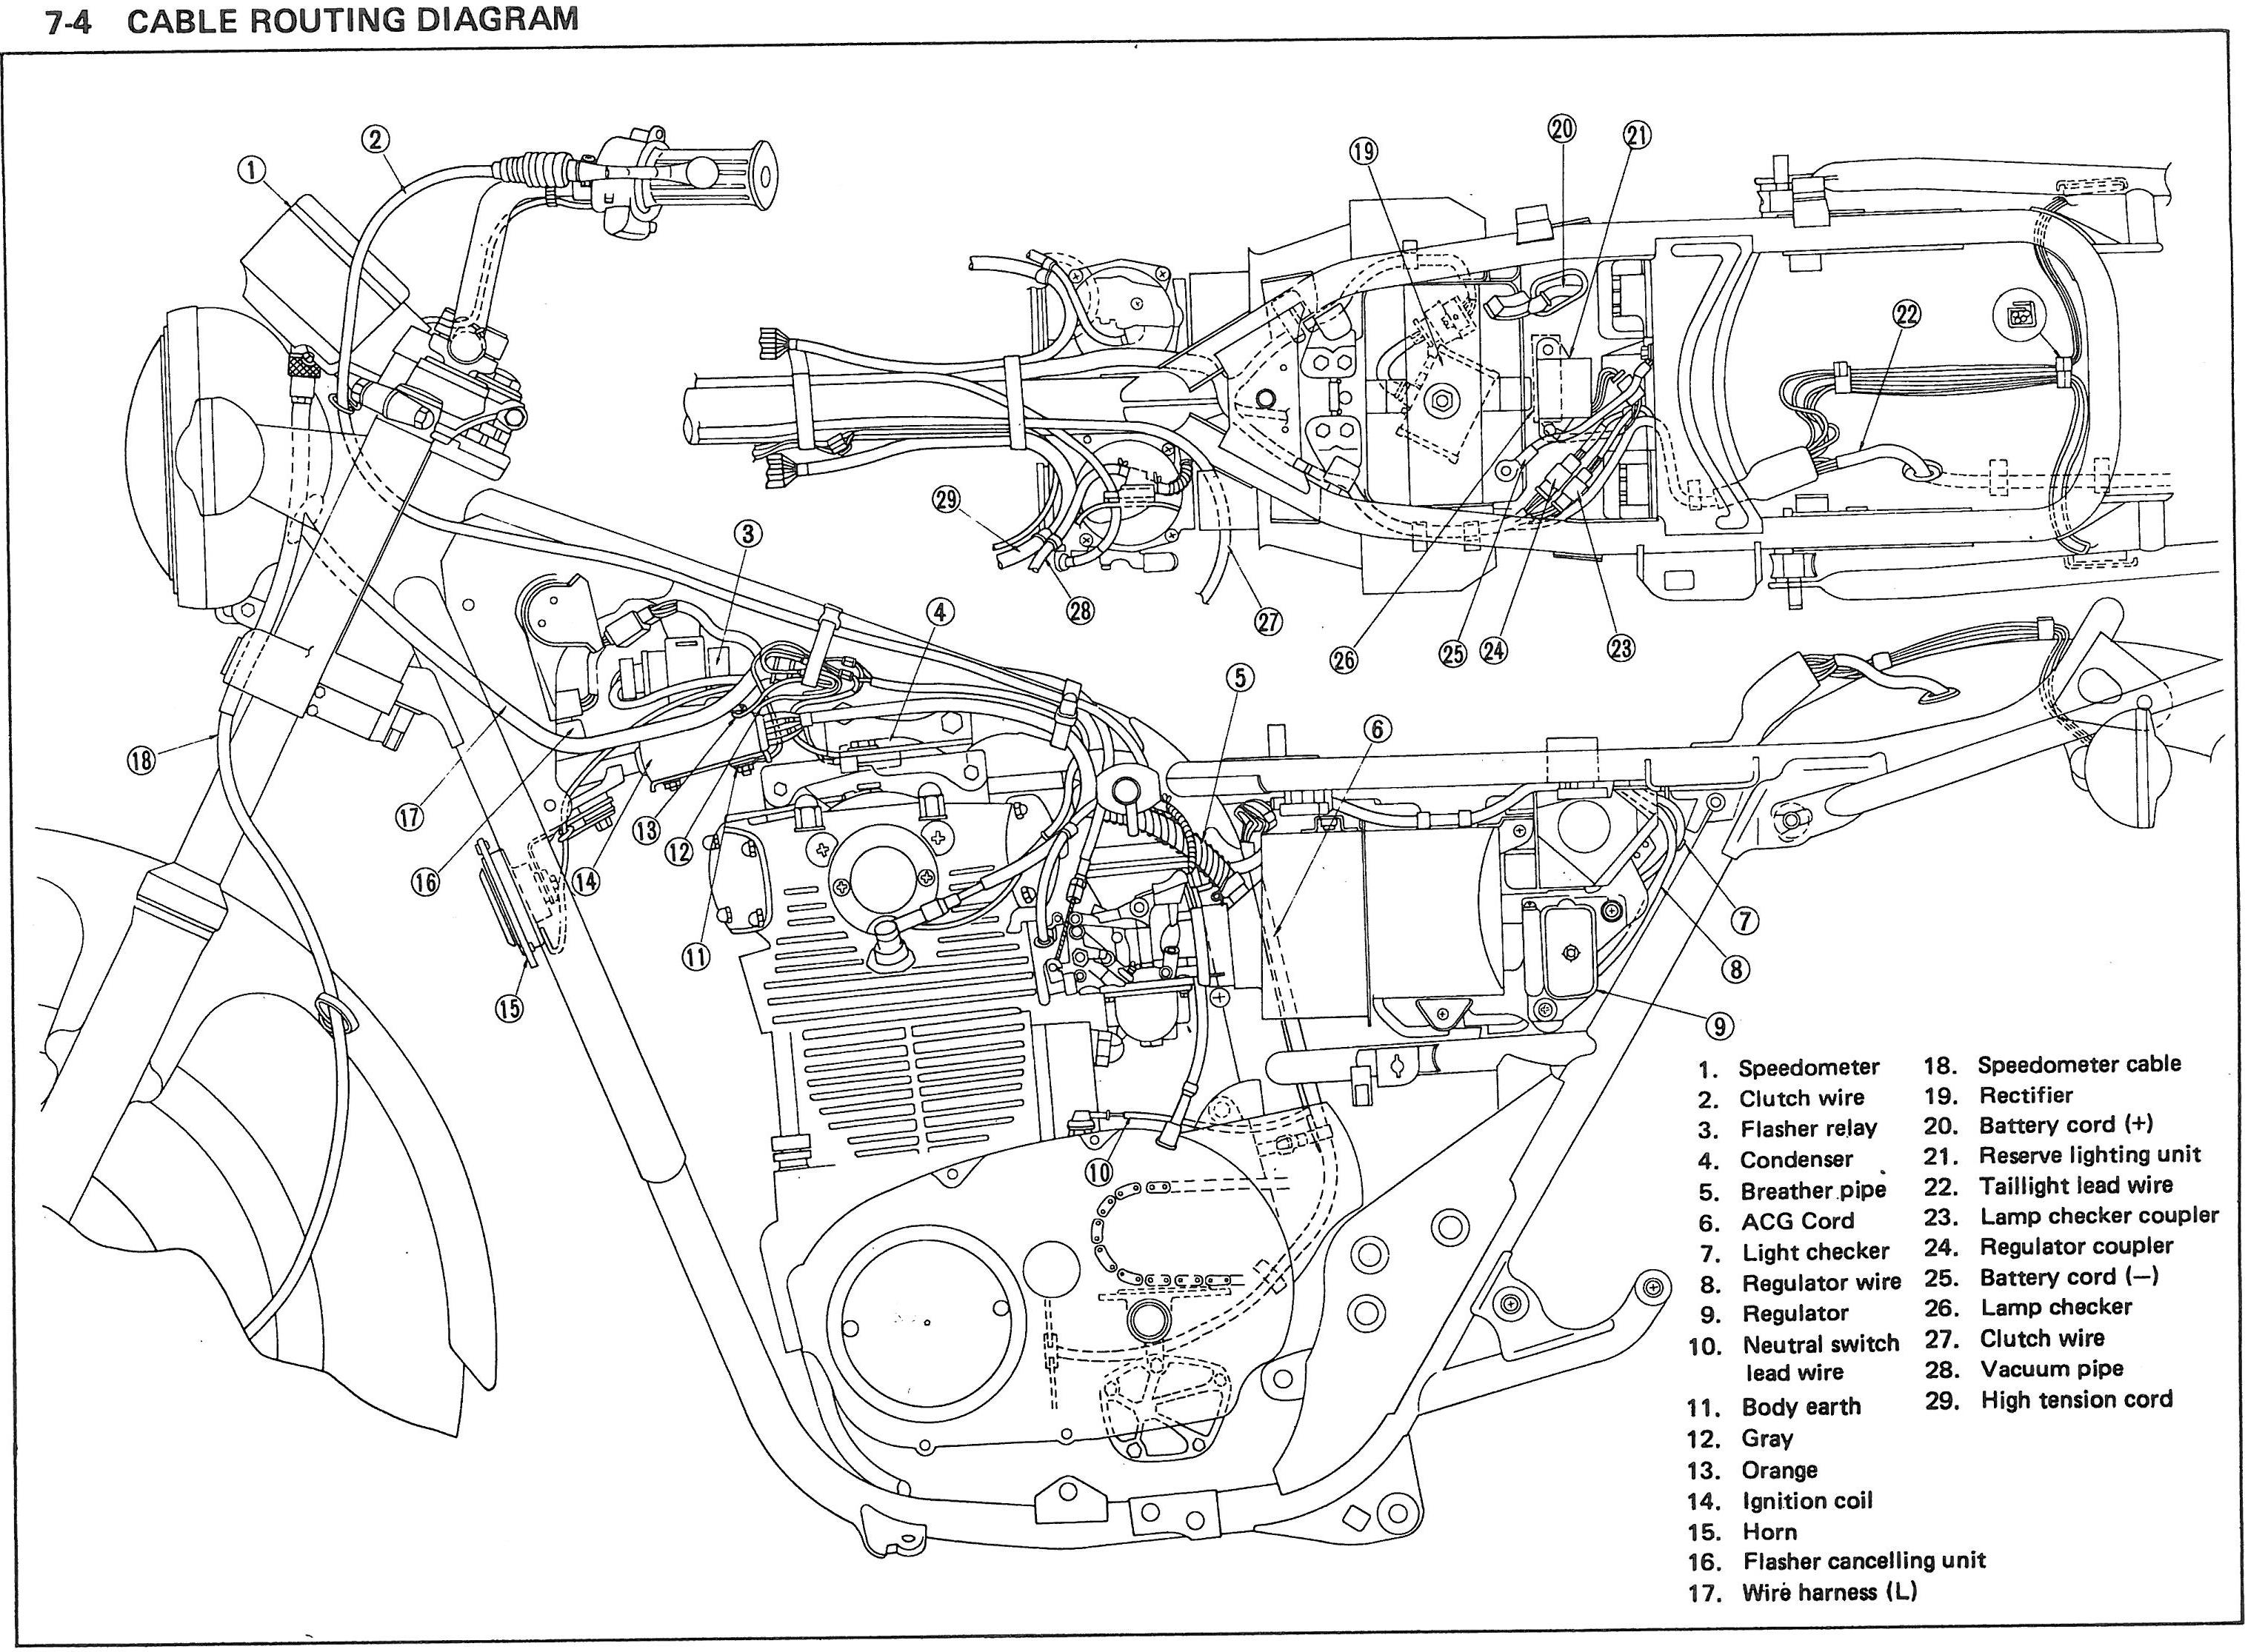 F18 1982 Xj550 Wiring Diagram | #Digital~Resources# Yamaha Tr Wiring Diagram on